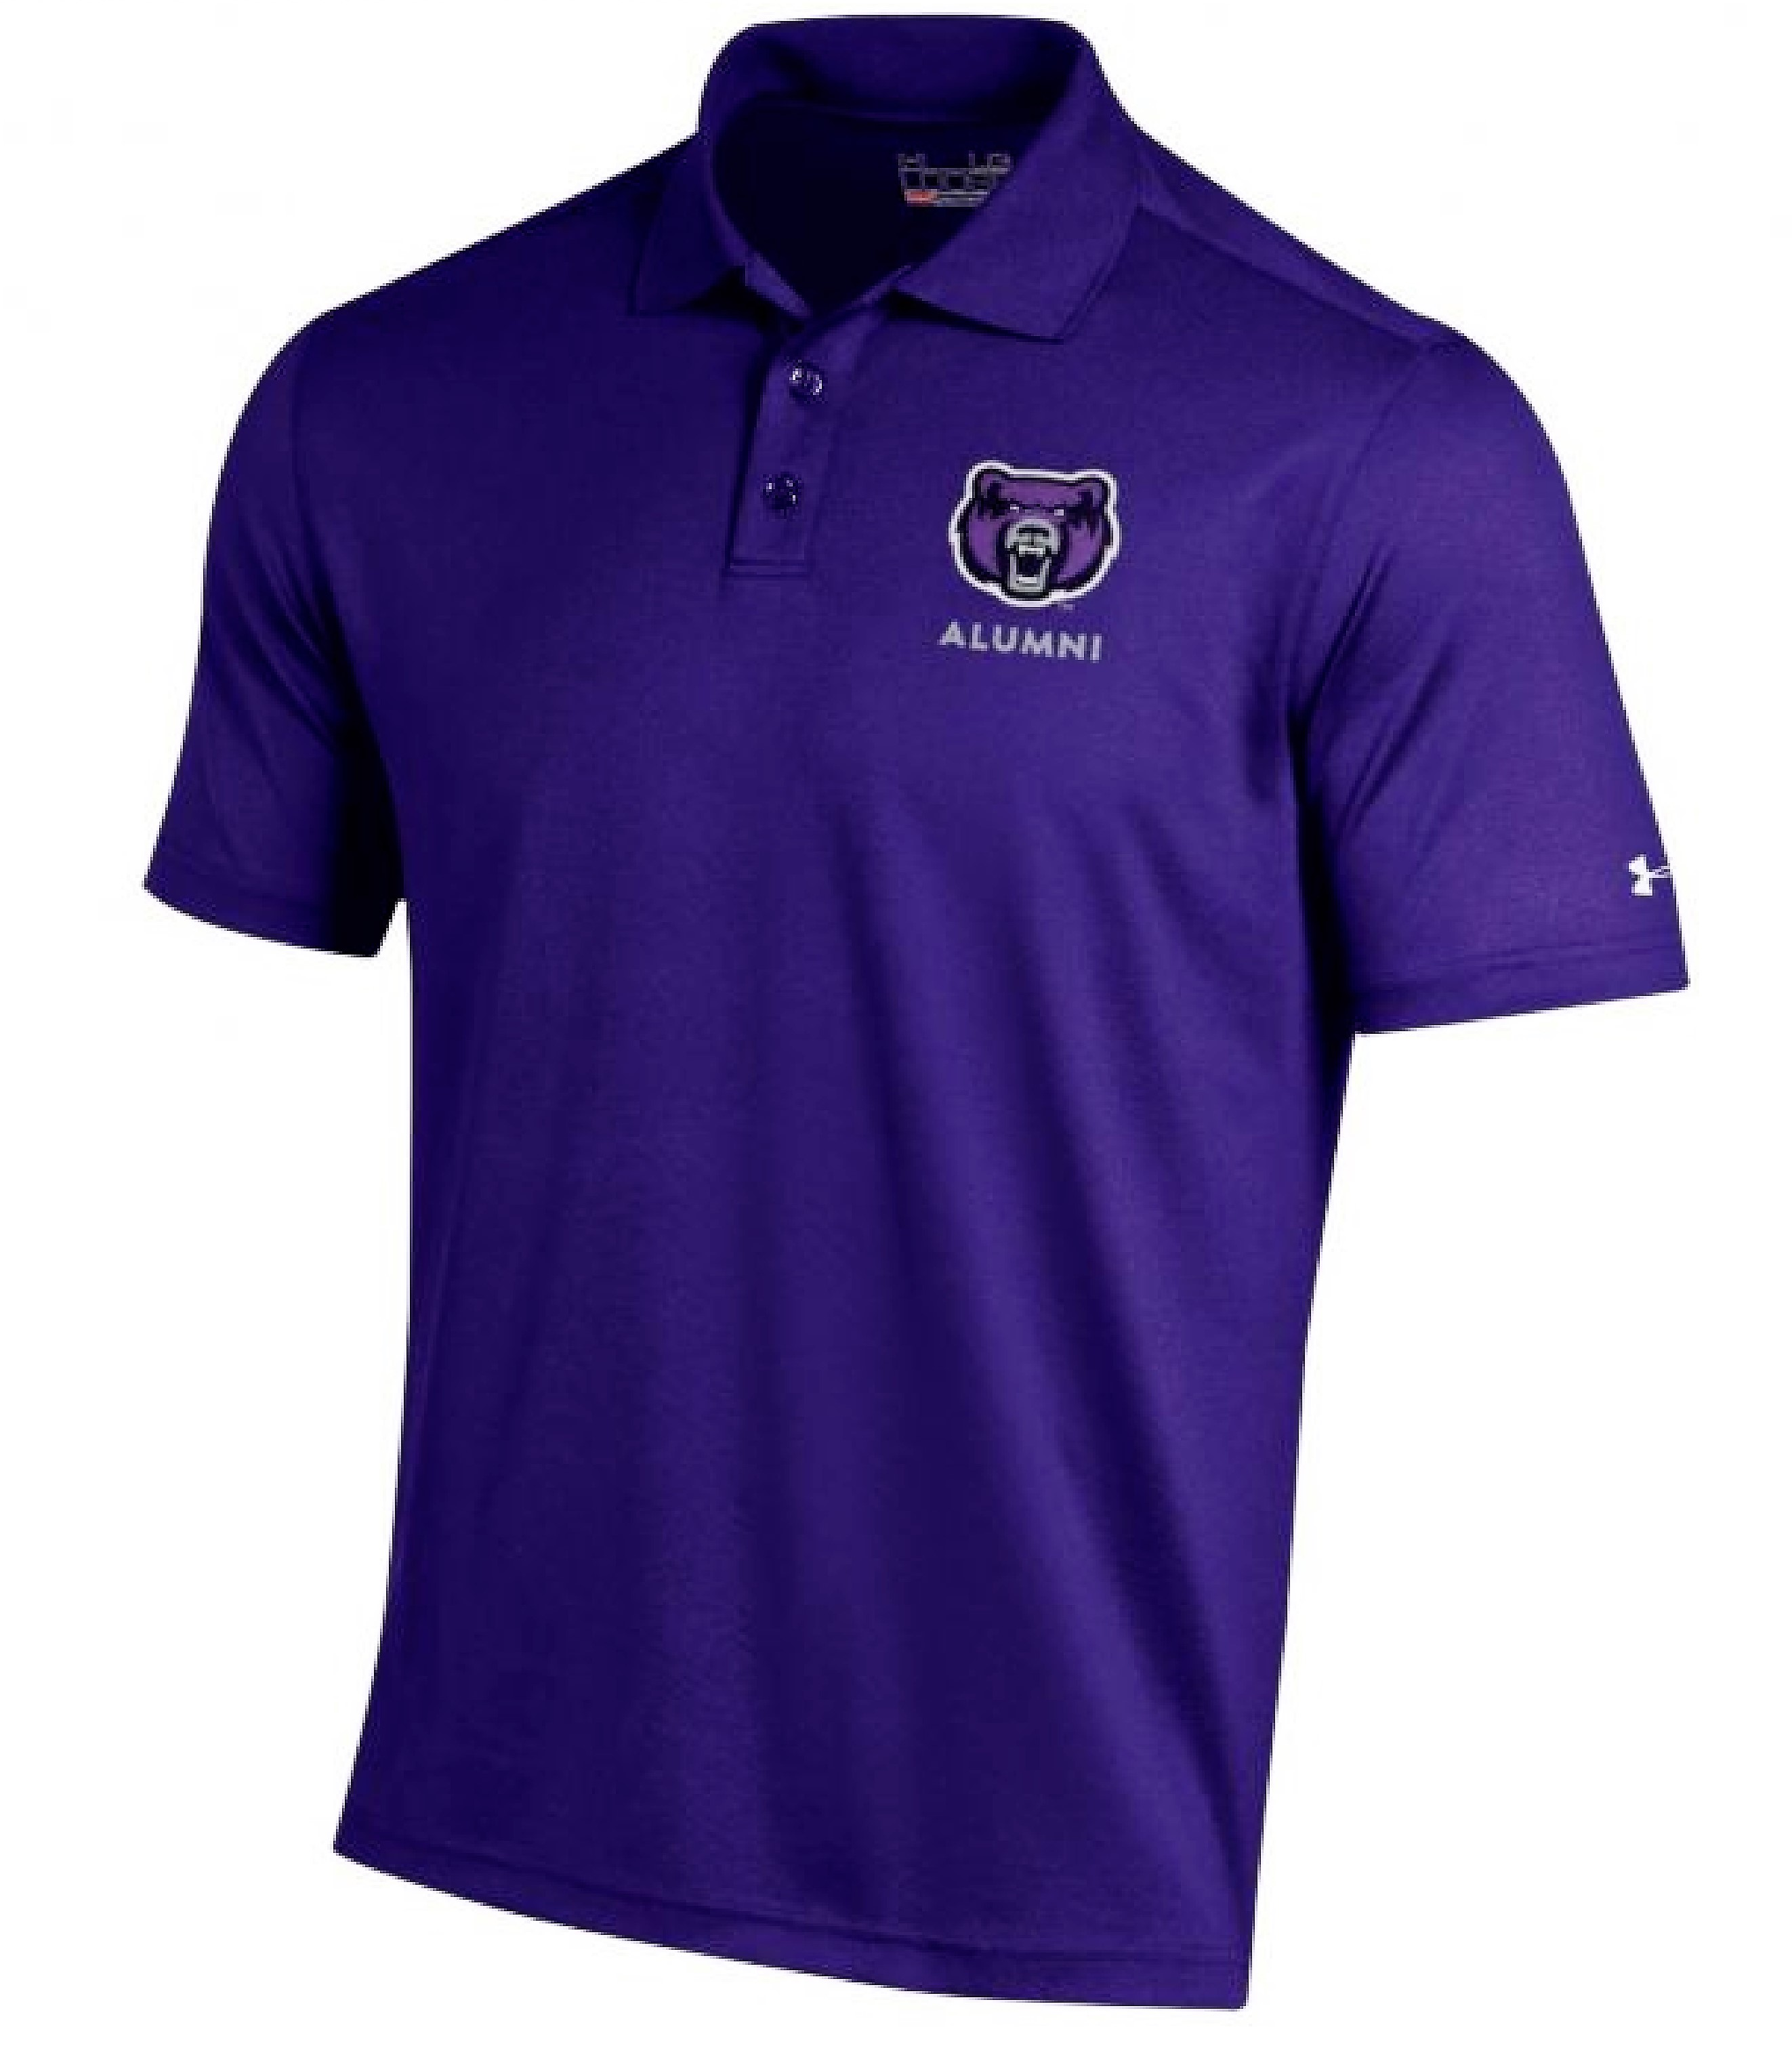 Alumni Performance Polo